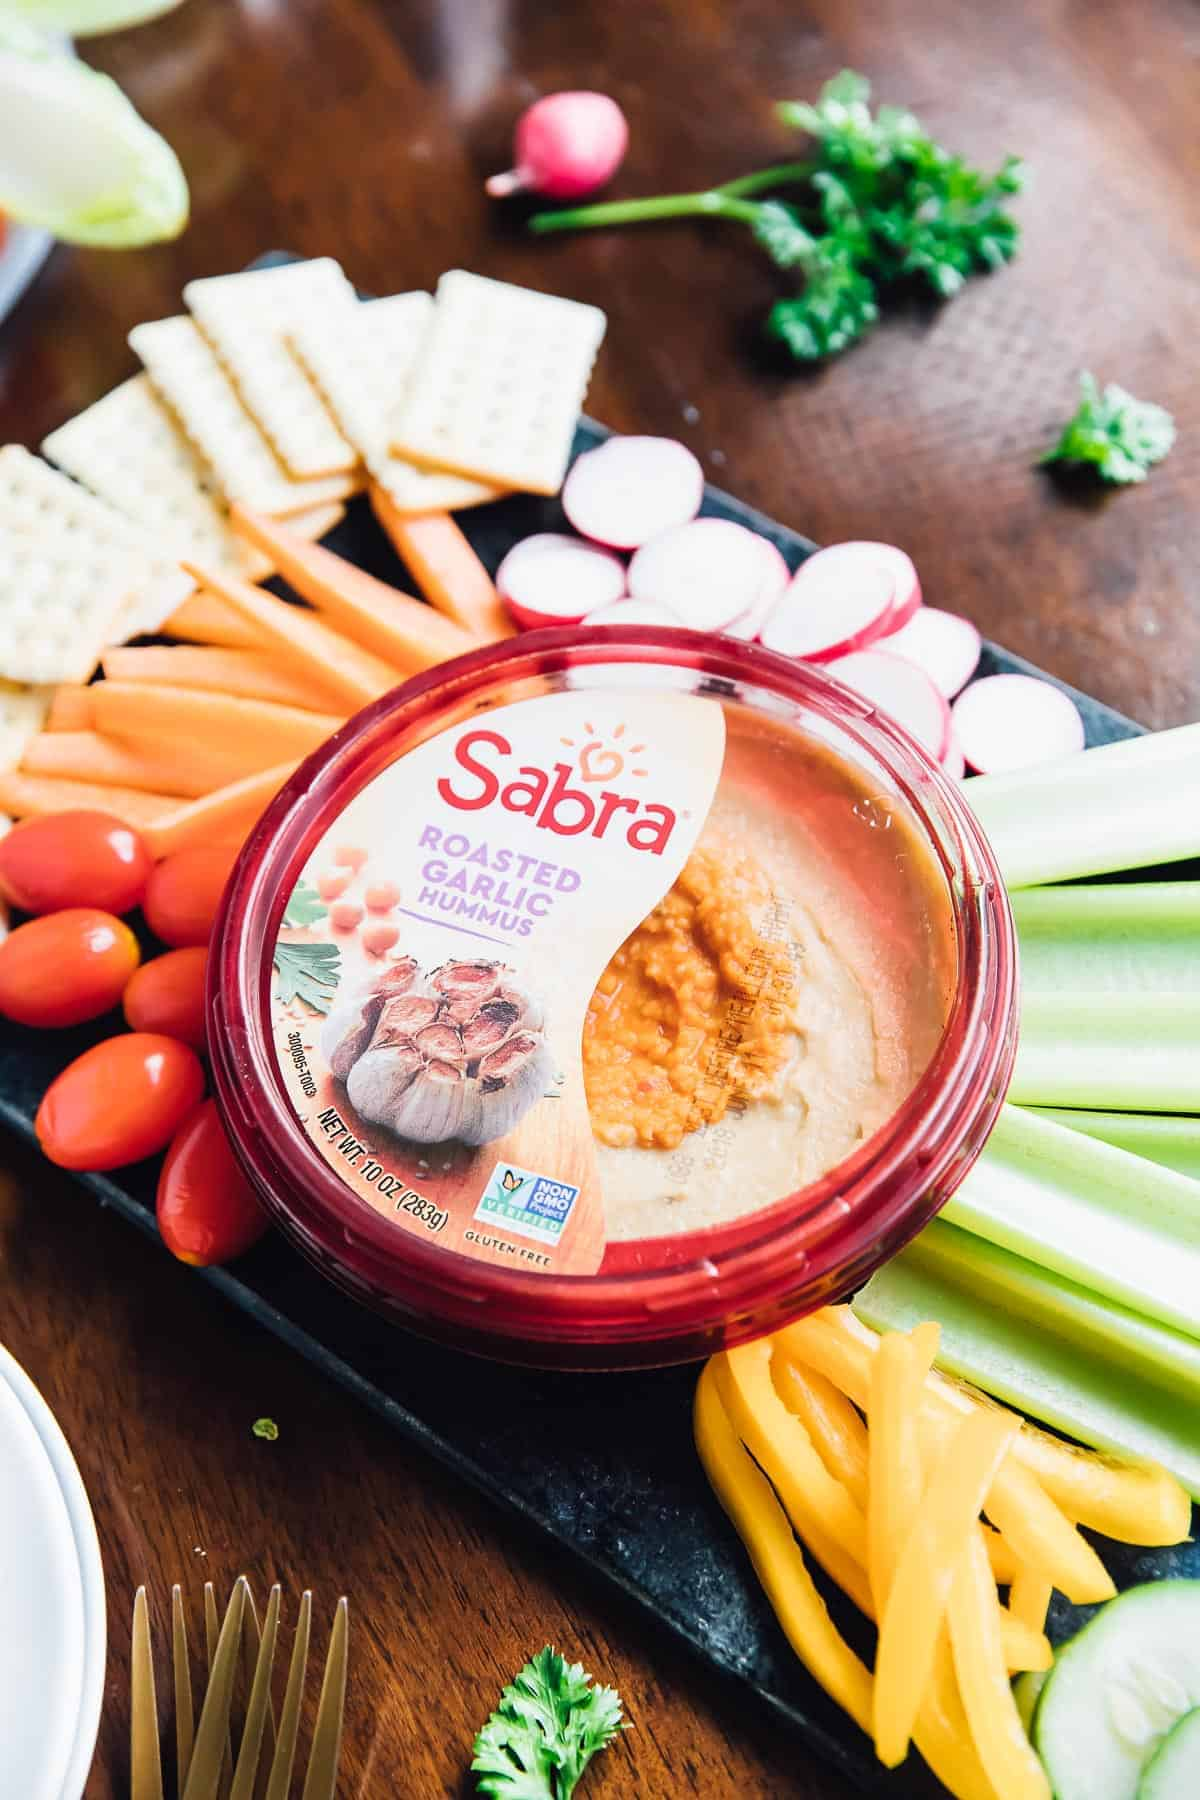 A tub of roasted garlic hummus, surrounded by raw vegetables.